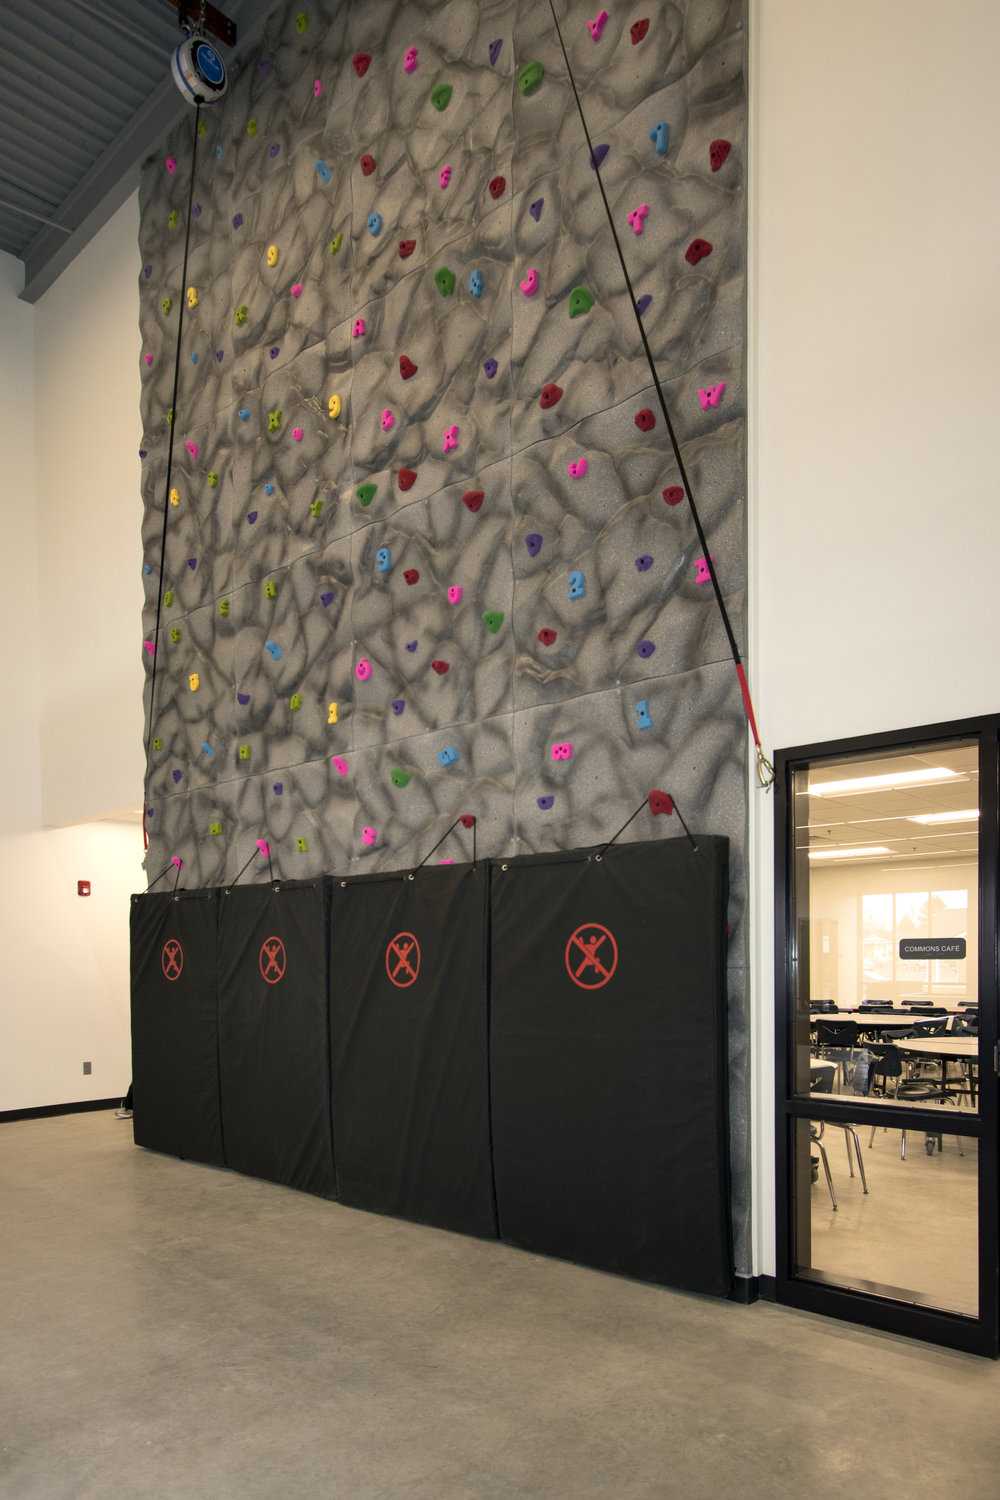 Plymouth Boys and Girls Club Climbing Wall.jpg